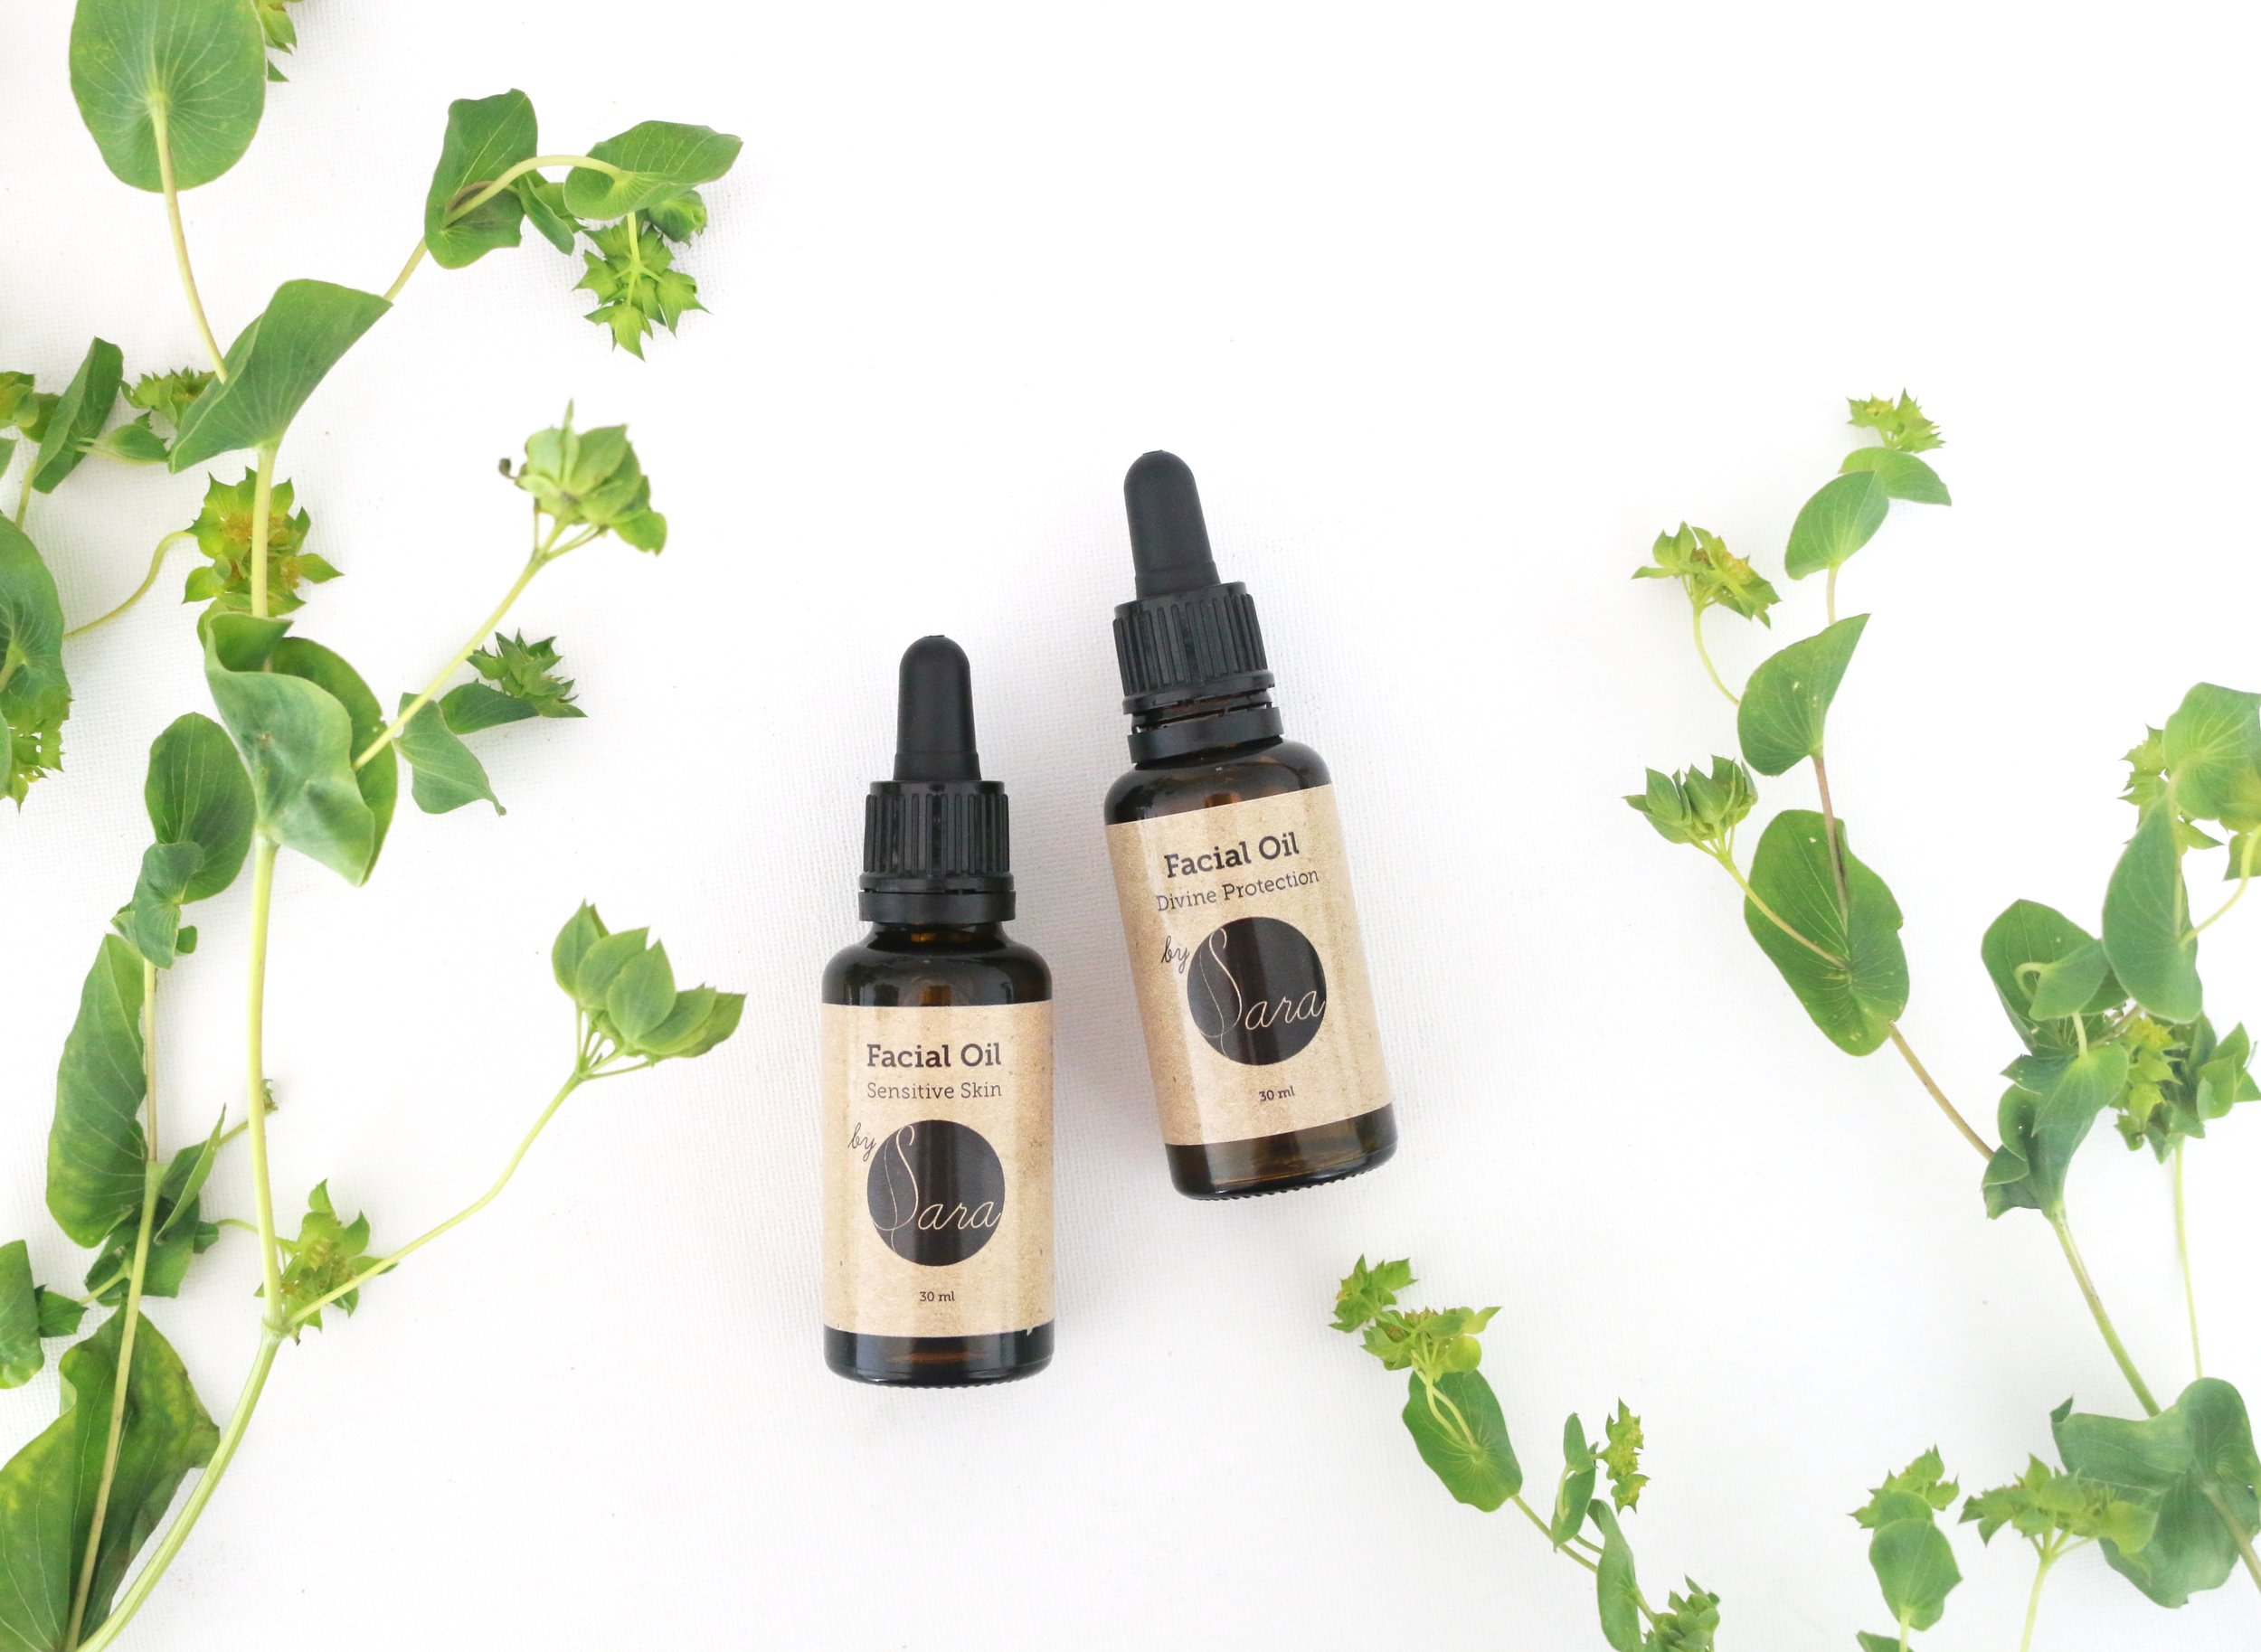 organics-by-sara-facial-oil